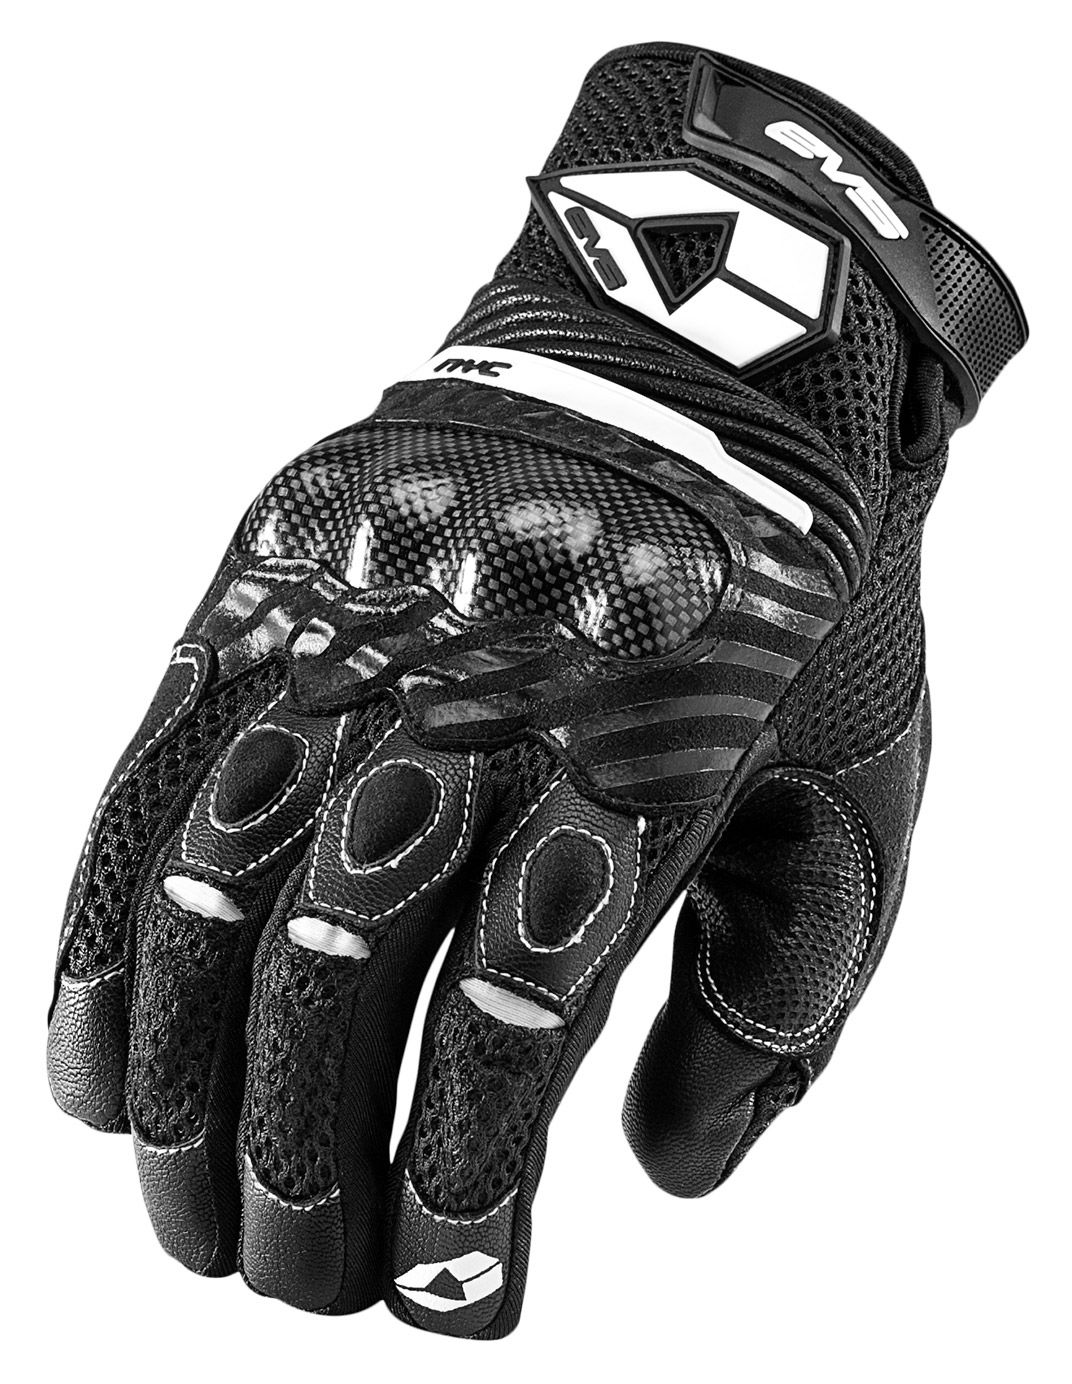 Motorcycle gloves nyc -